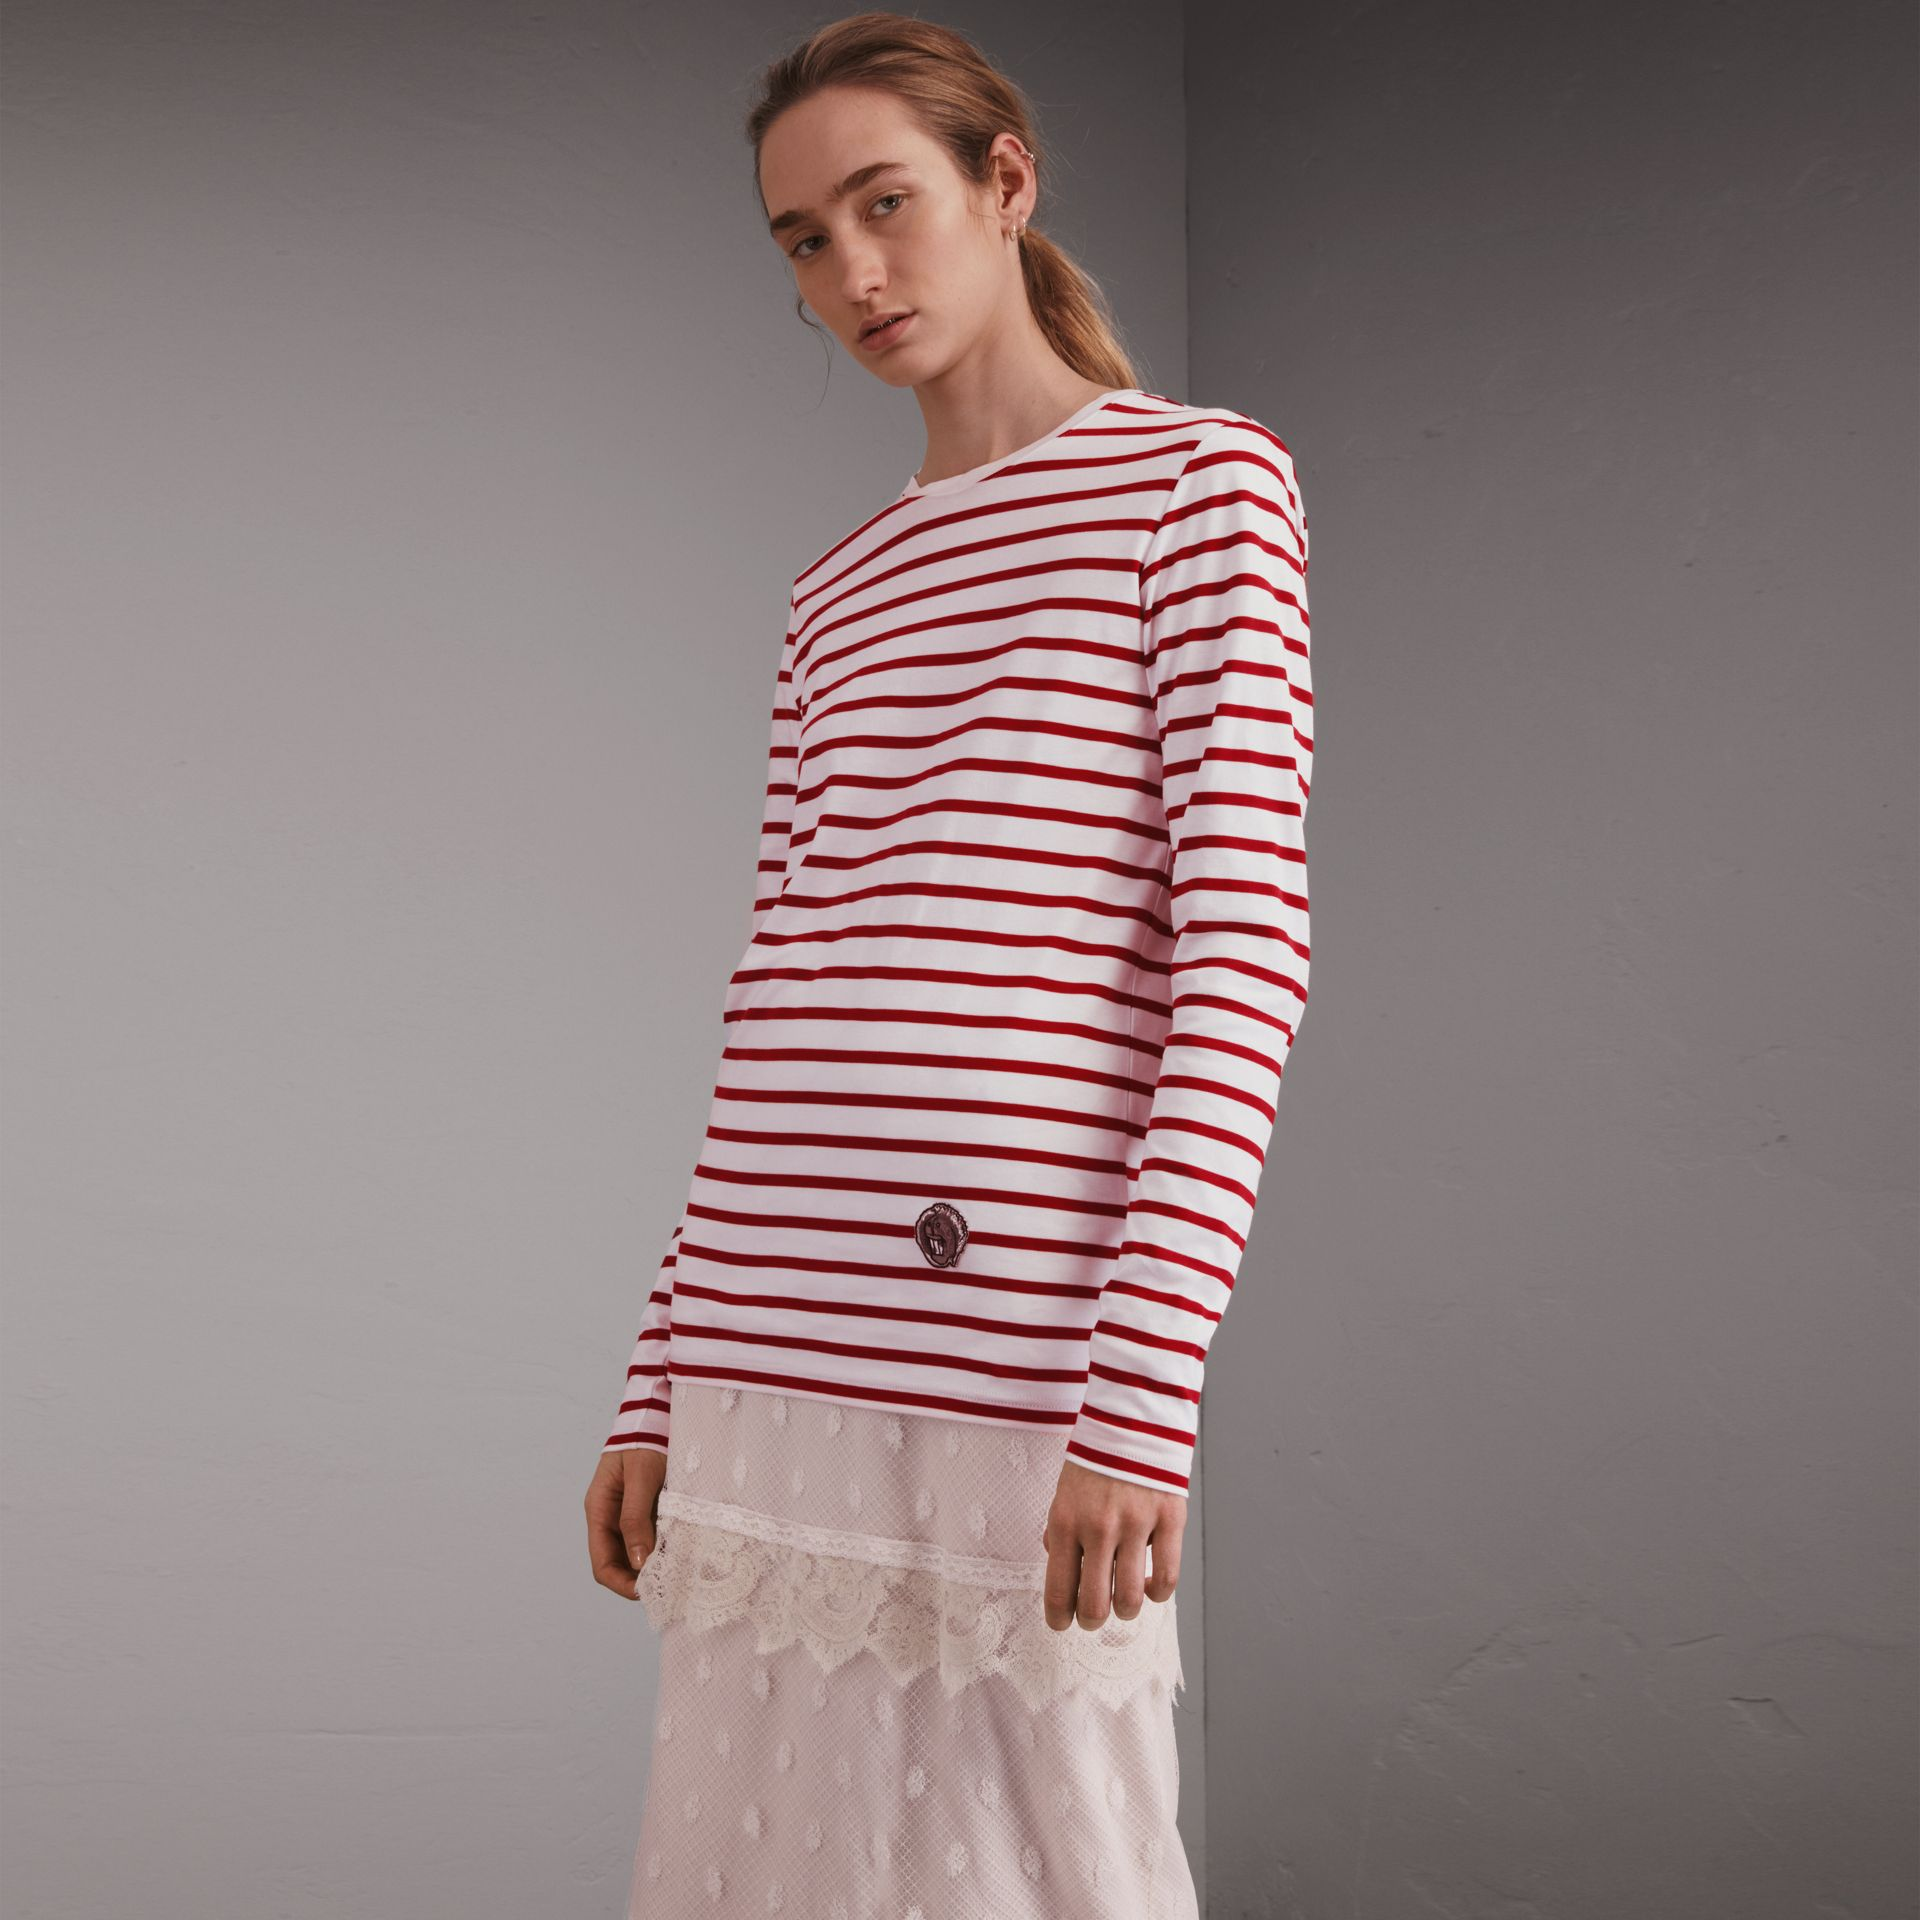 Unisex Pallas Heads Motif Breton Stripe Cotton Top - gallery image 1